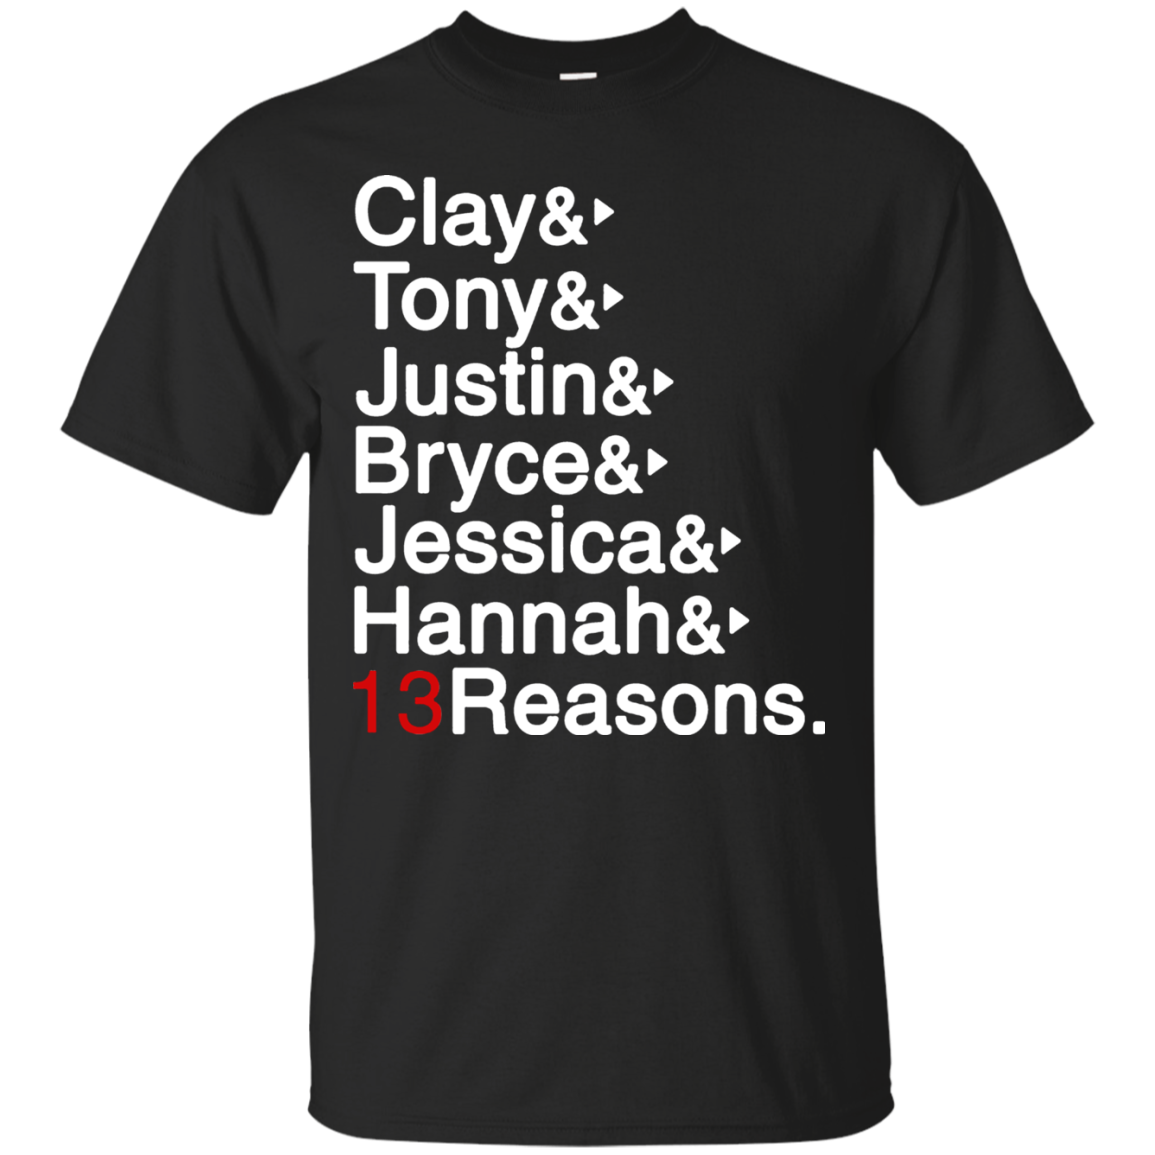 13 Reasons Why T shirts Clay Tony Justin Bryce Jess Hannah Hoodies Sweatshirts